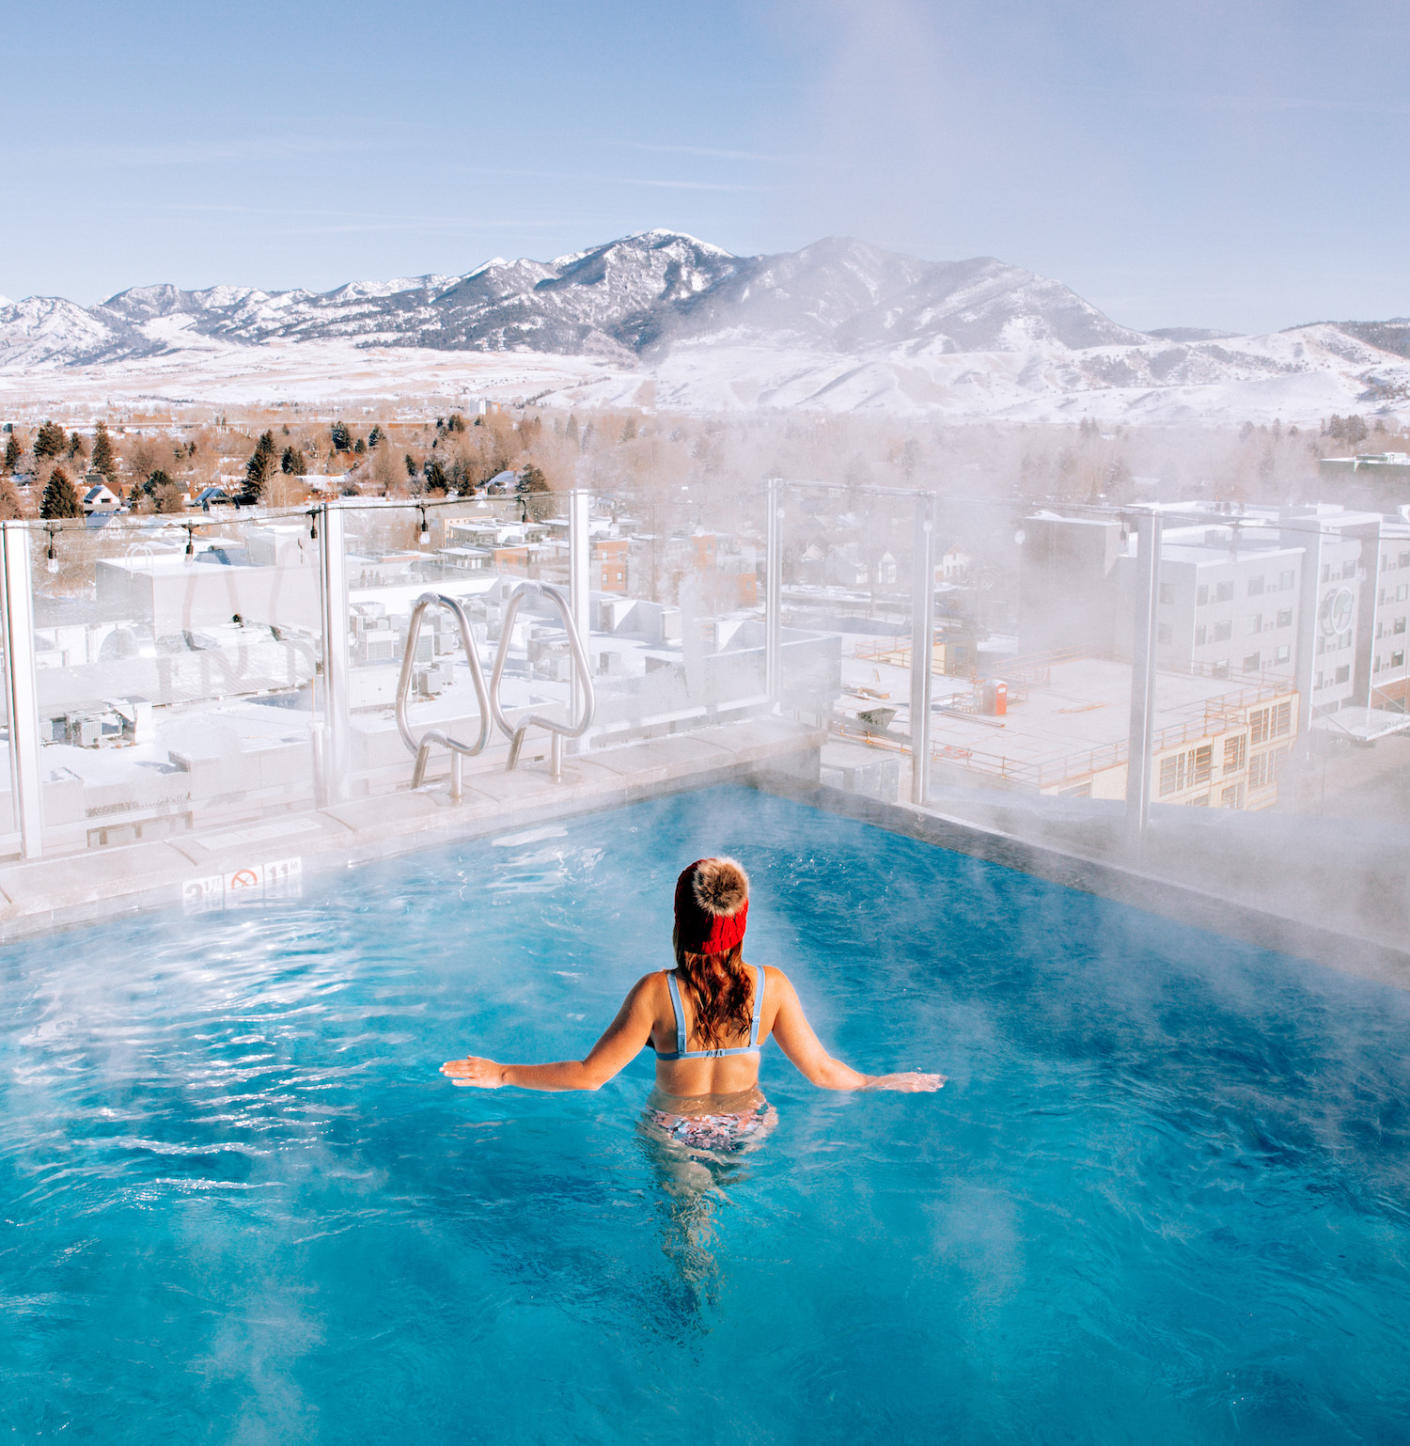 A woman in a hotel rooftop pool overlooking the rocky mountains of Montana.